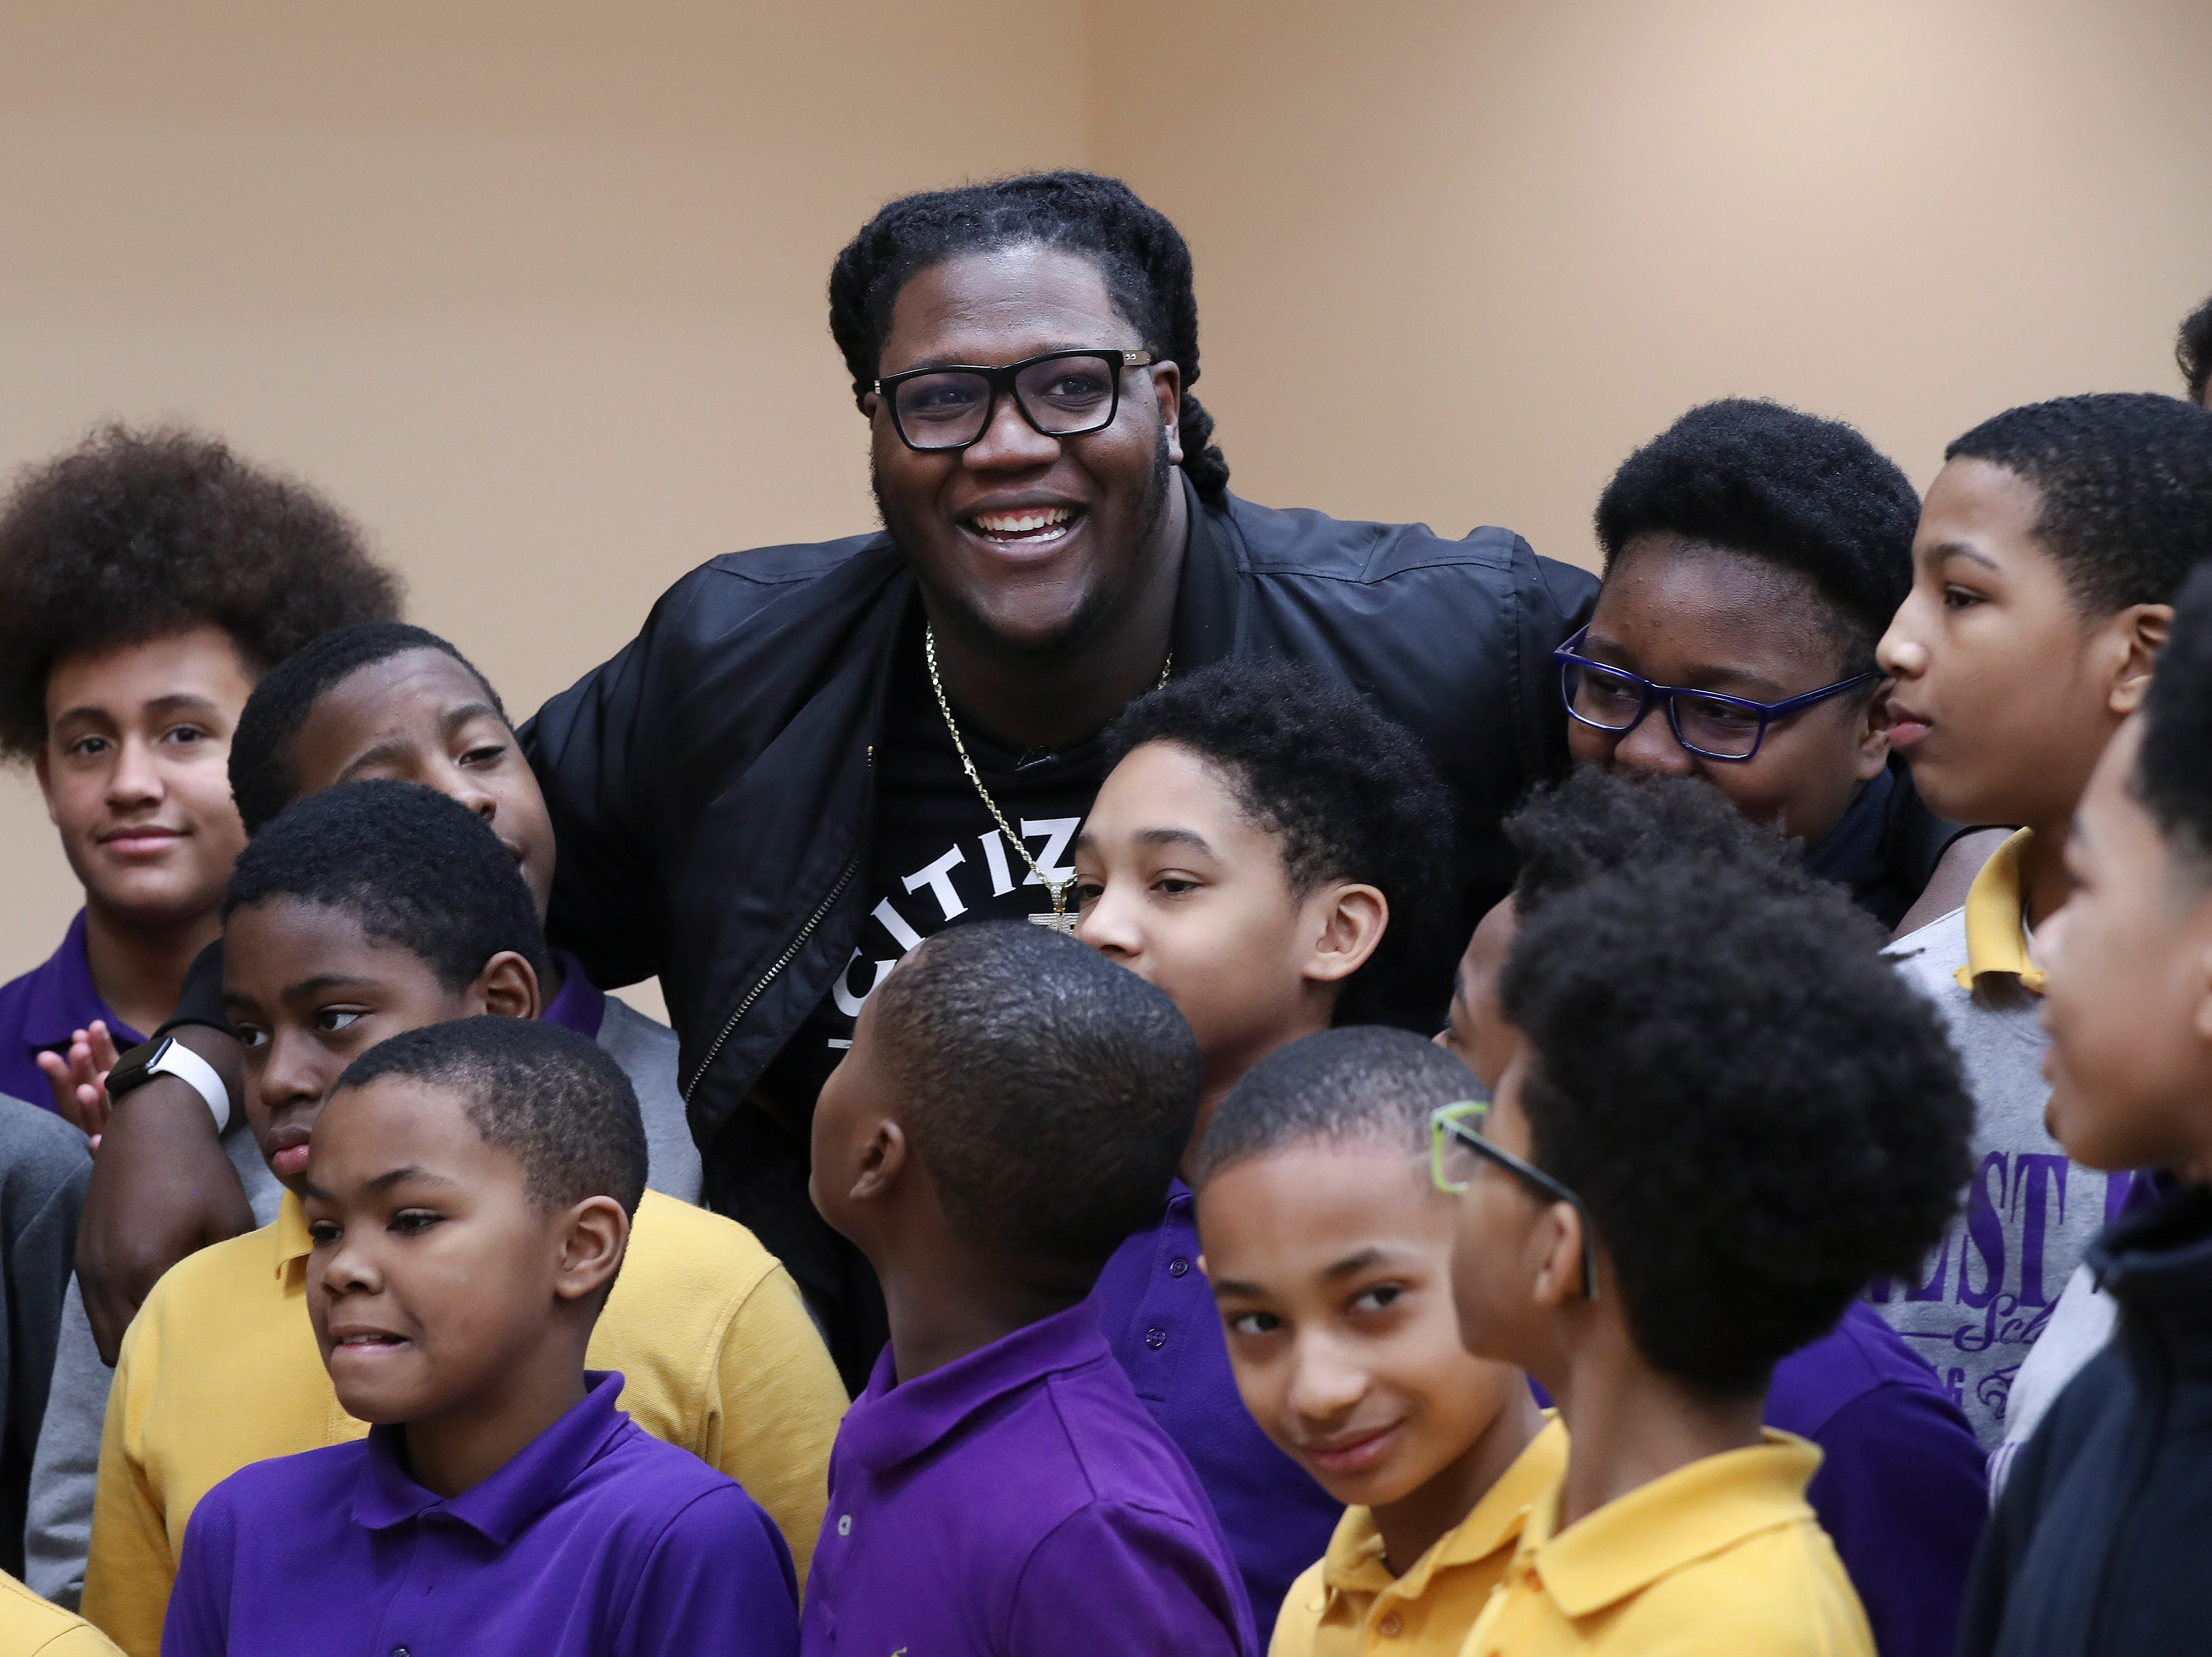 Jamon Brown, center, a former U of L football player who is in the NFL now, embraced a group of students at the West End School.  Brown spoke to the students about ways to prevent bullying.  He plays right guard for the New York Giants.Feb. 11, 2019